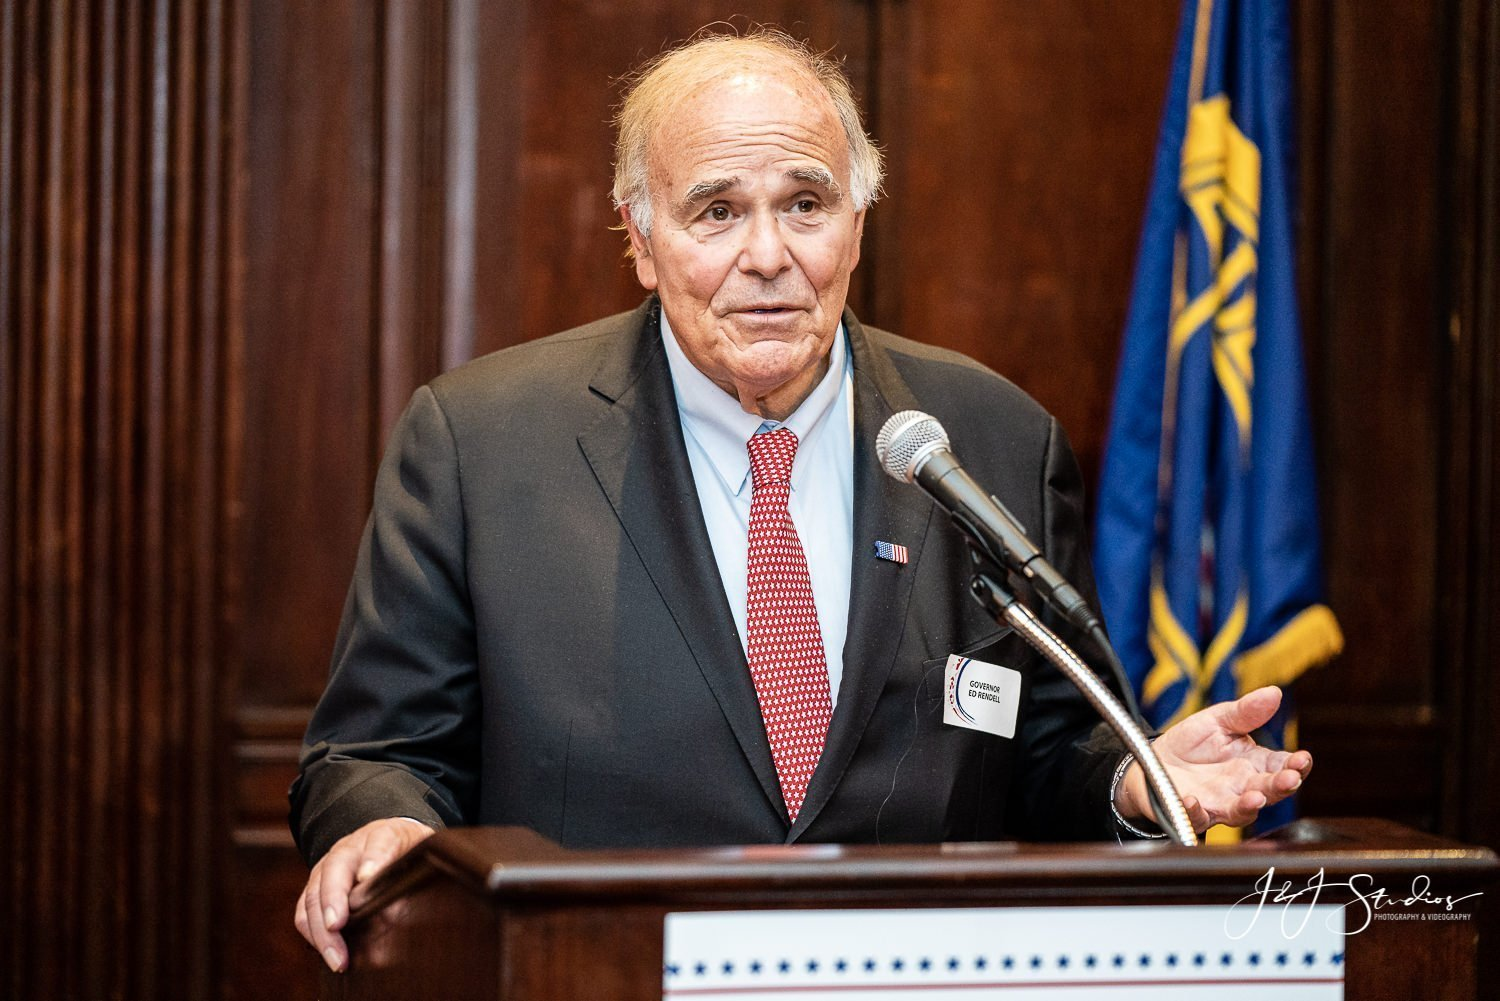 governor ed rendell american 250